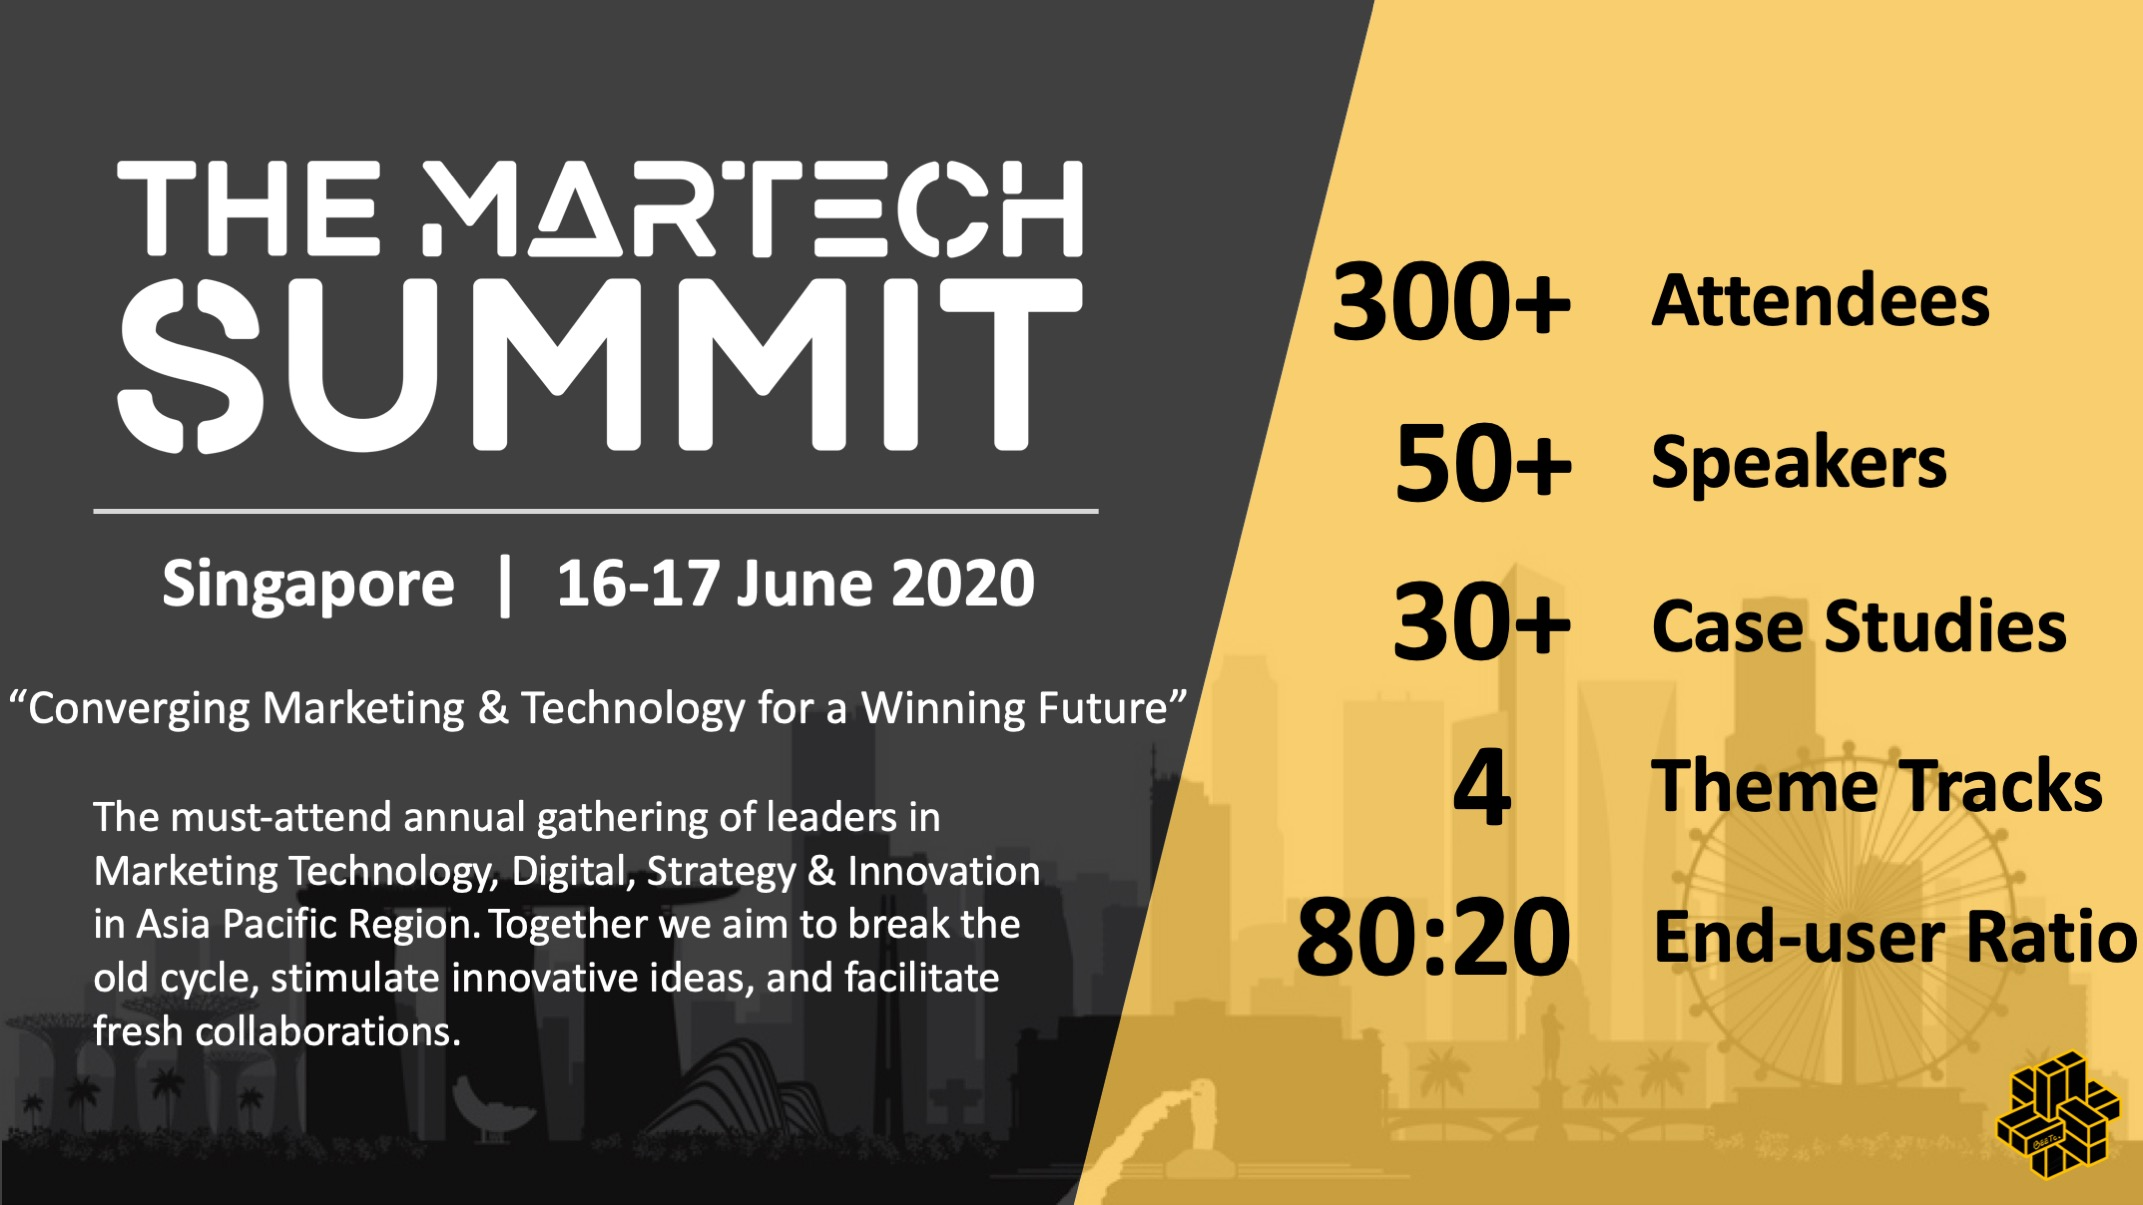 The MarTech Summit Singapore organized by BEETc